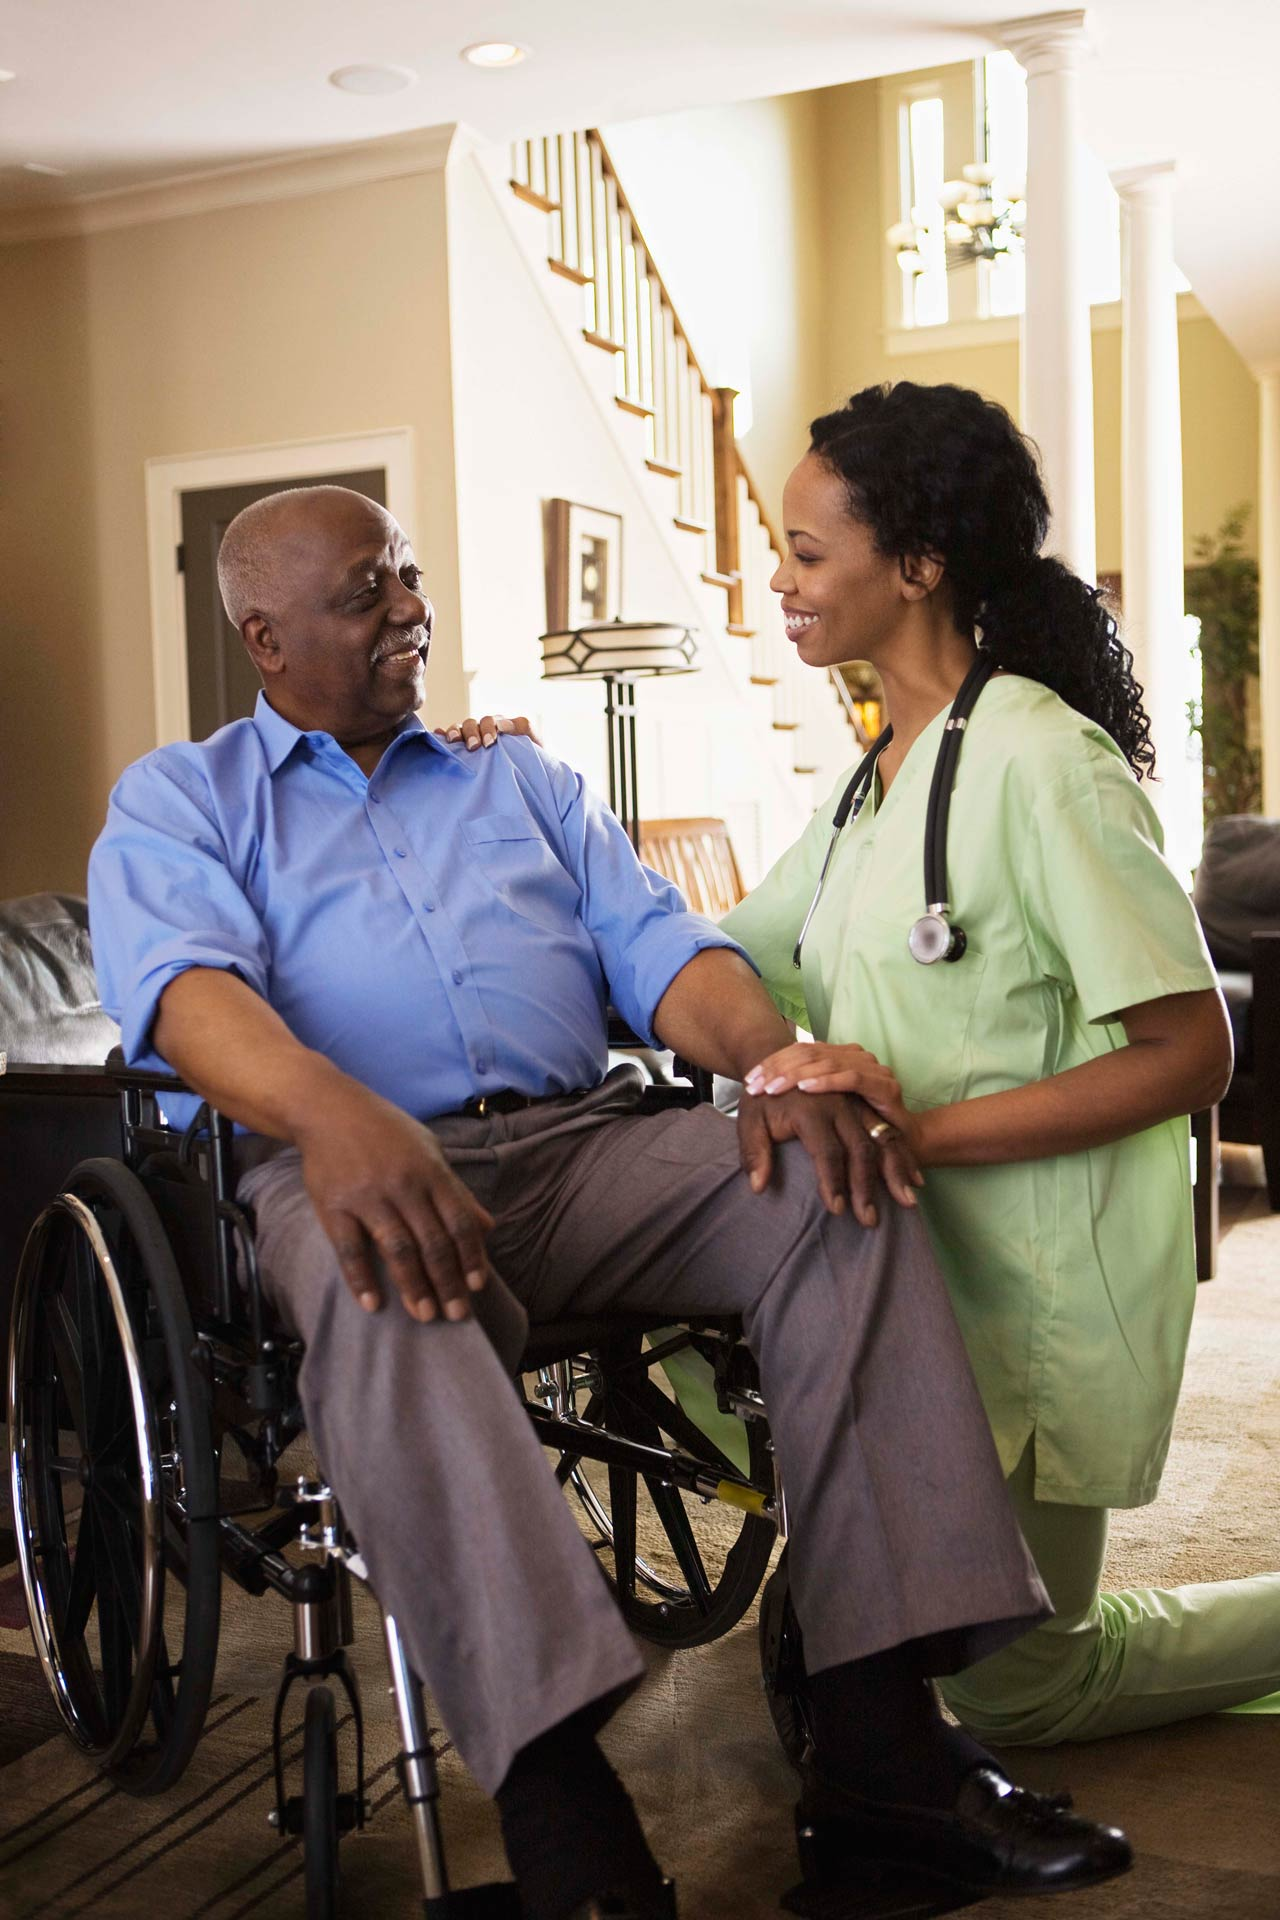 Home Health Services in Kansas City